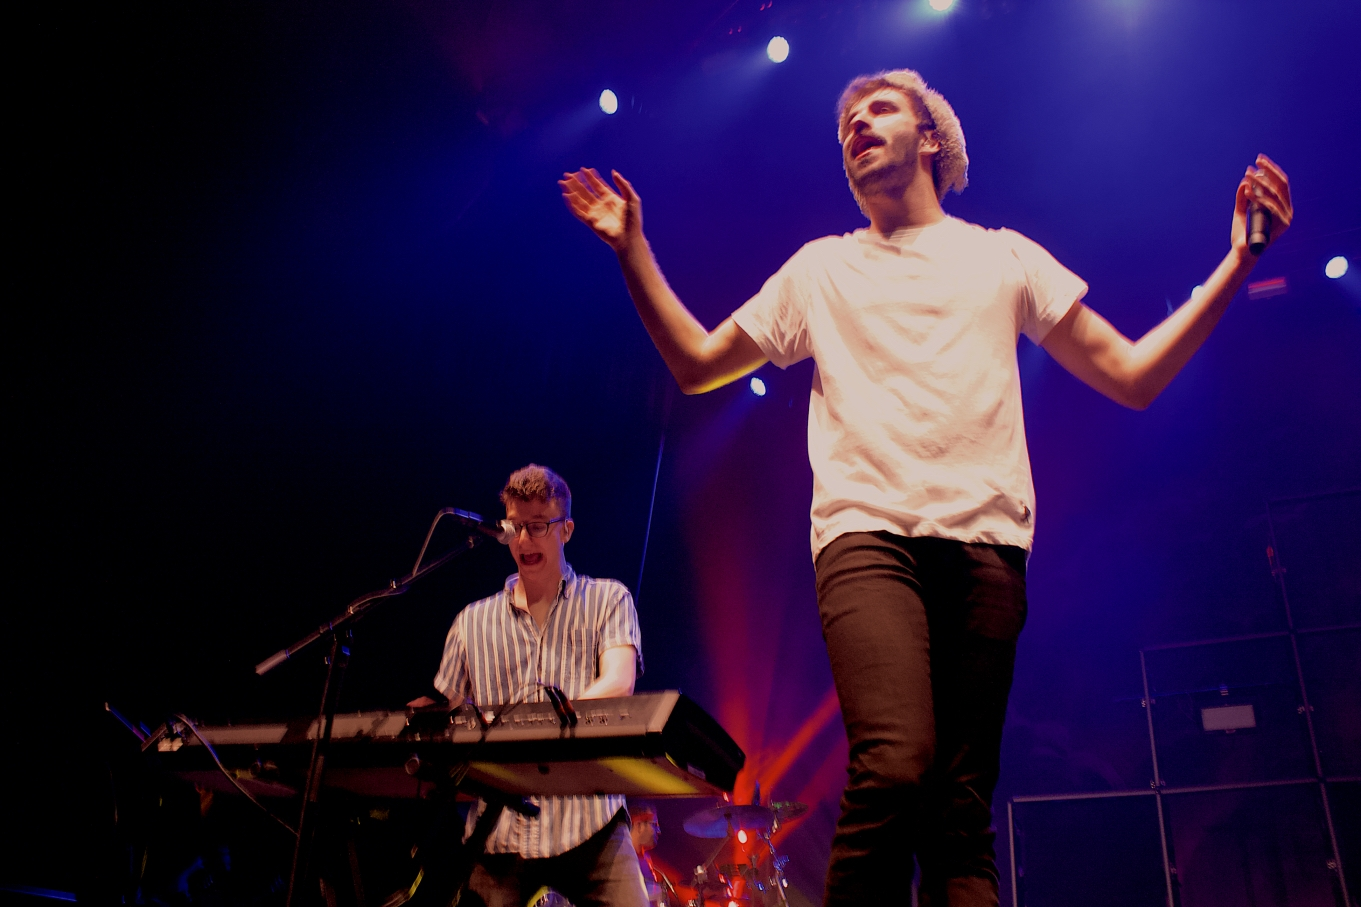 Diandra Reviews It All- AJR Are Happy Maniacs At Hammerstein